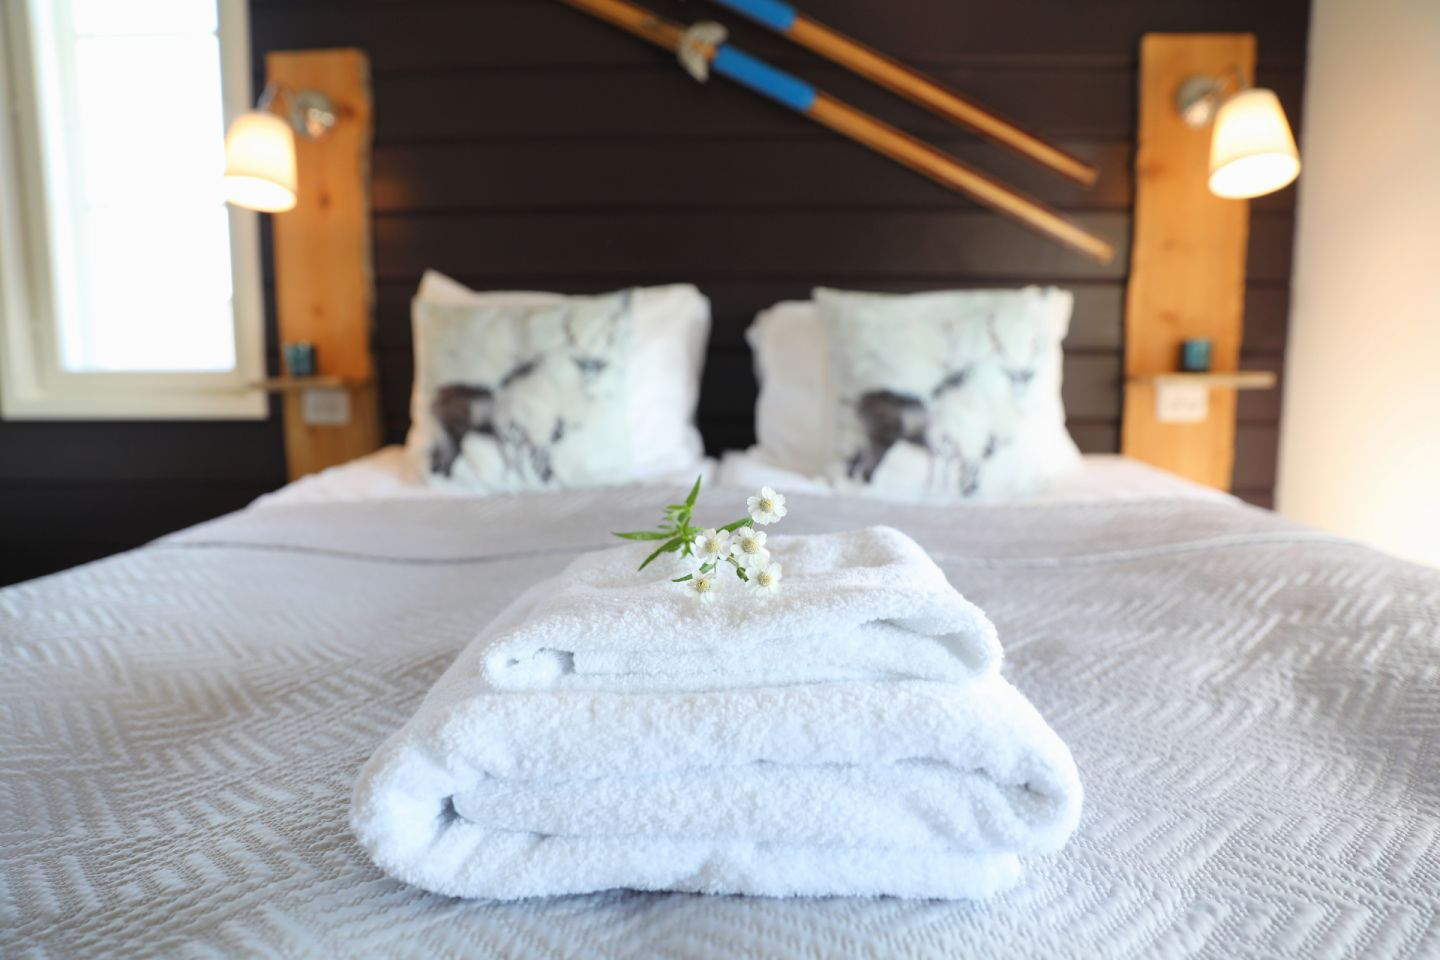 Opportunities for hotel investments in Lapland